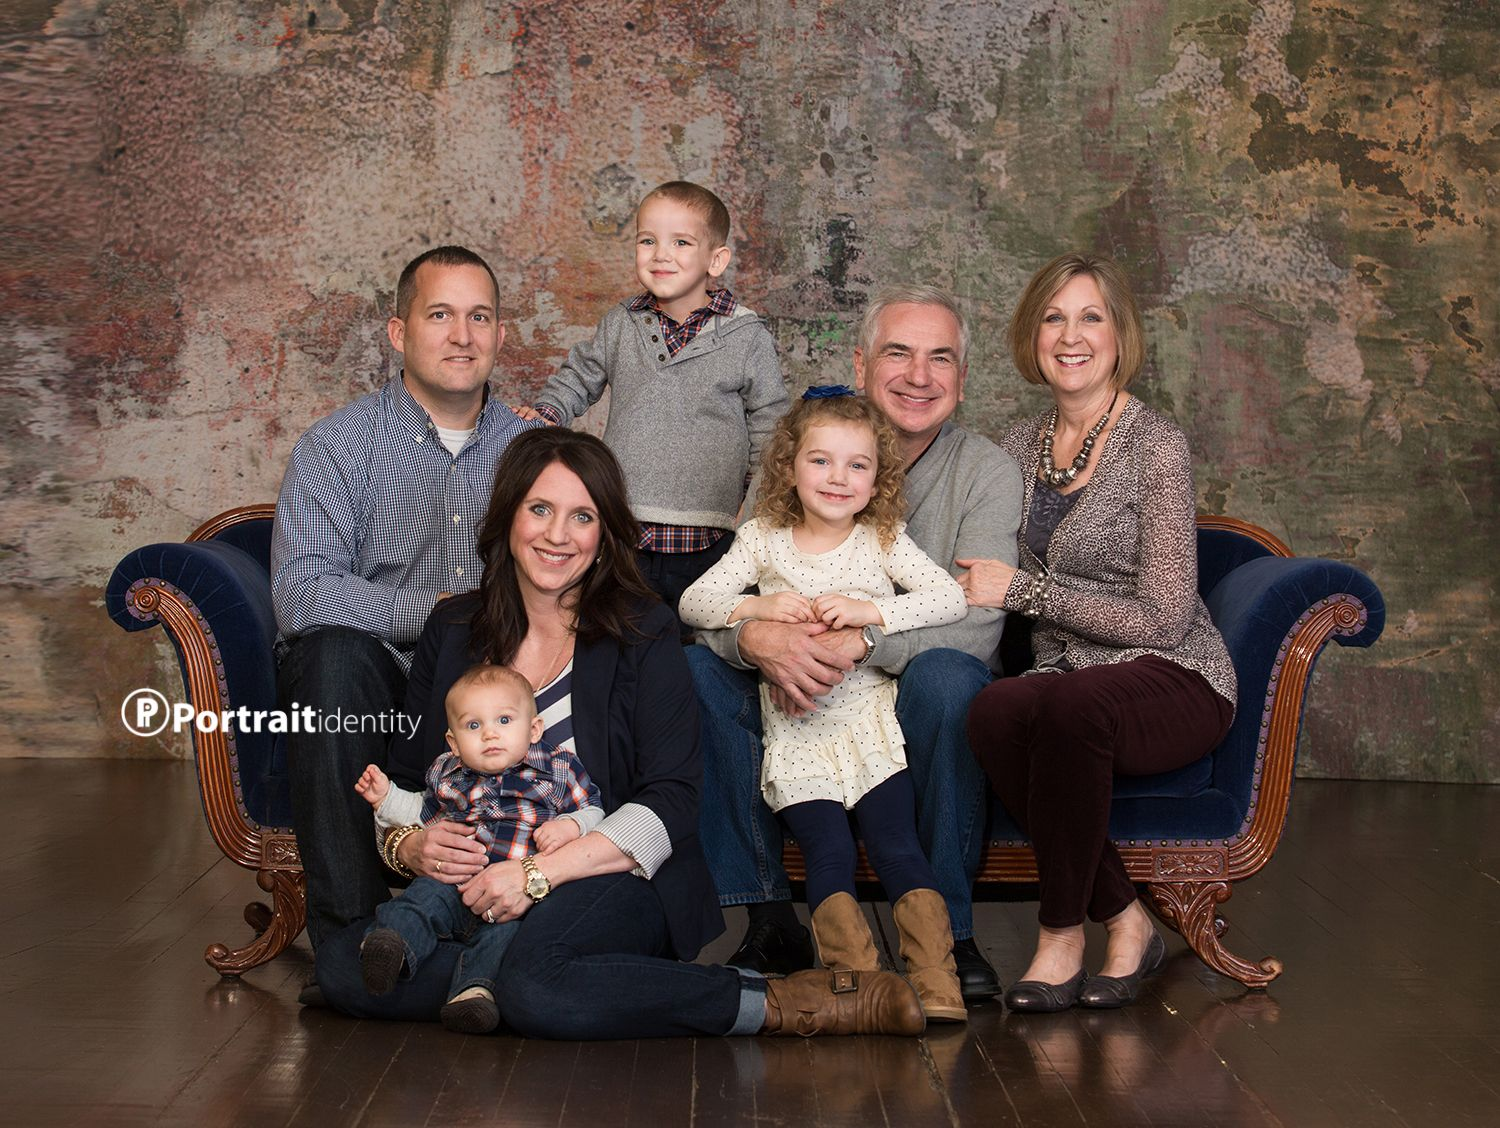 Familienfotos Ideen family photo shoot ideas indoors search equipment i want